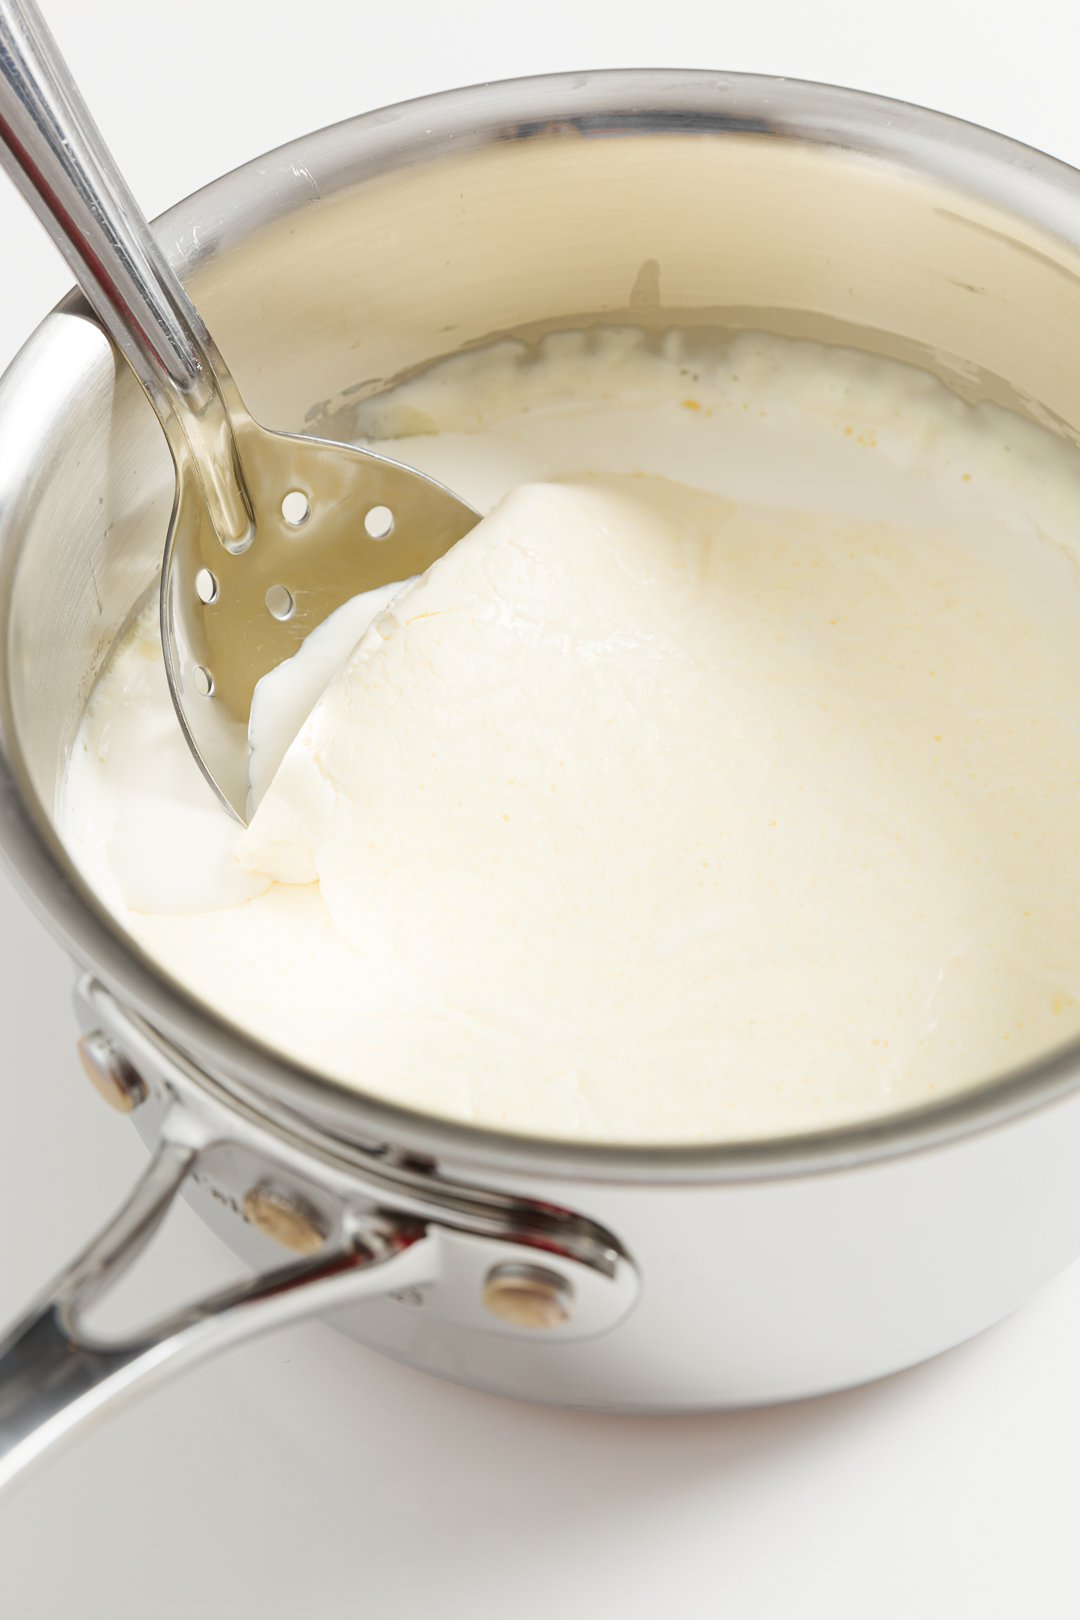 Skimming clotted cream in a pot using a slotted spoon